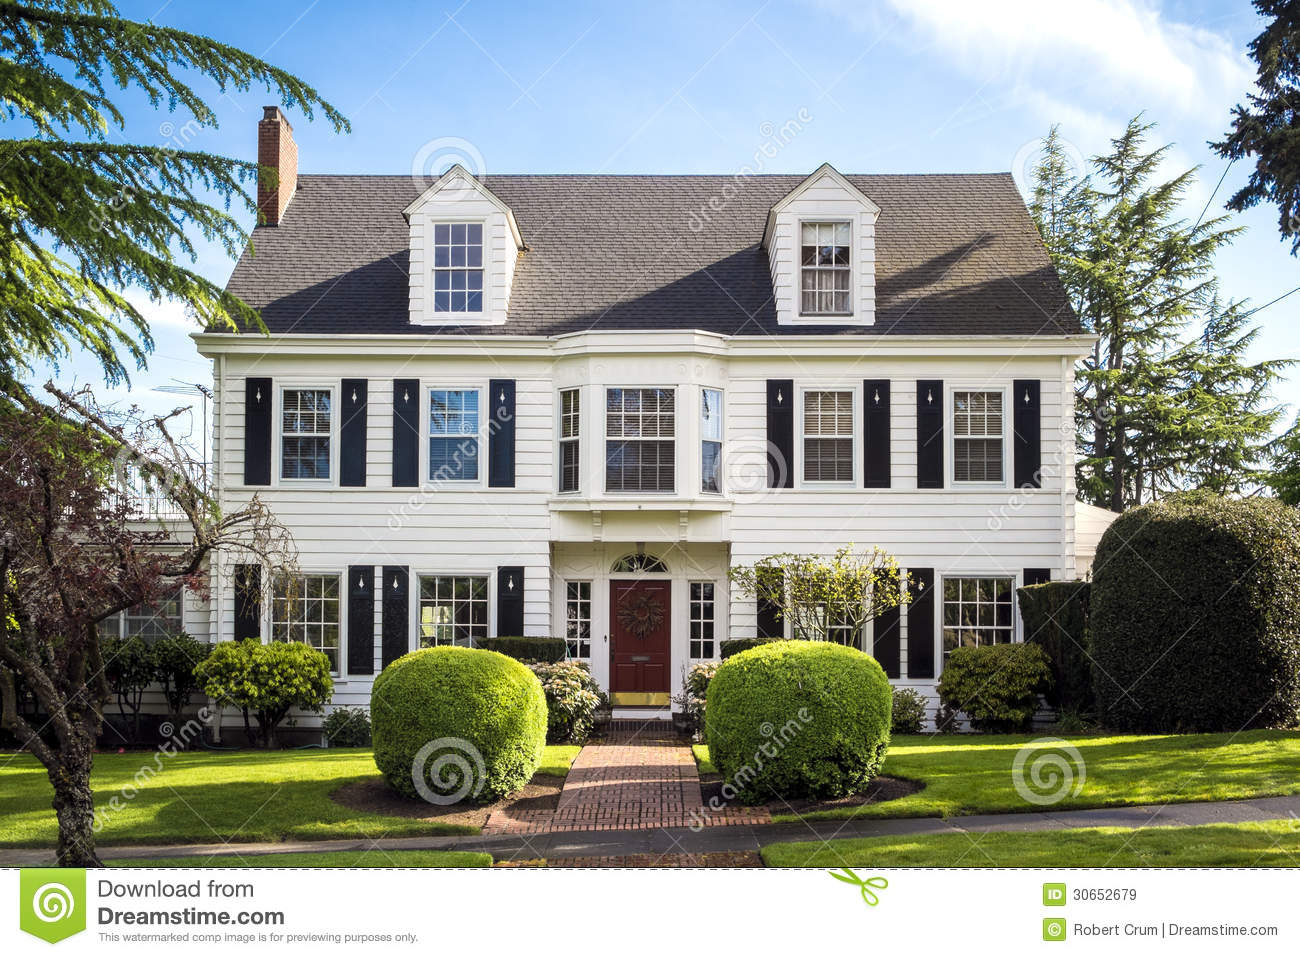 Classic american suburban house royalty free stock images for American classic house mouse